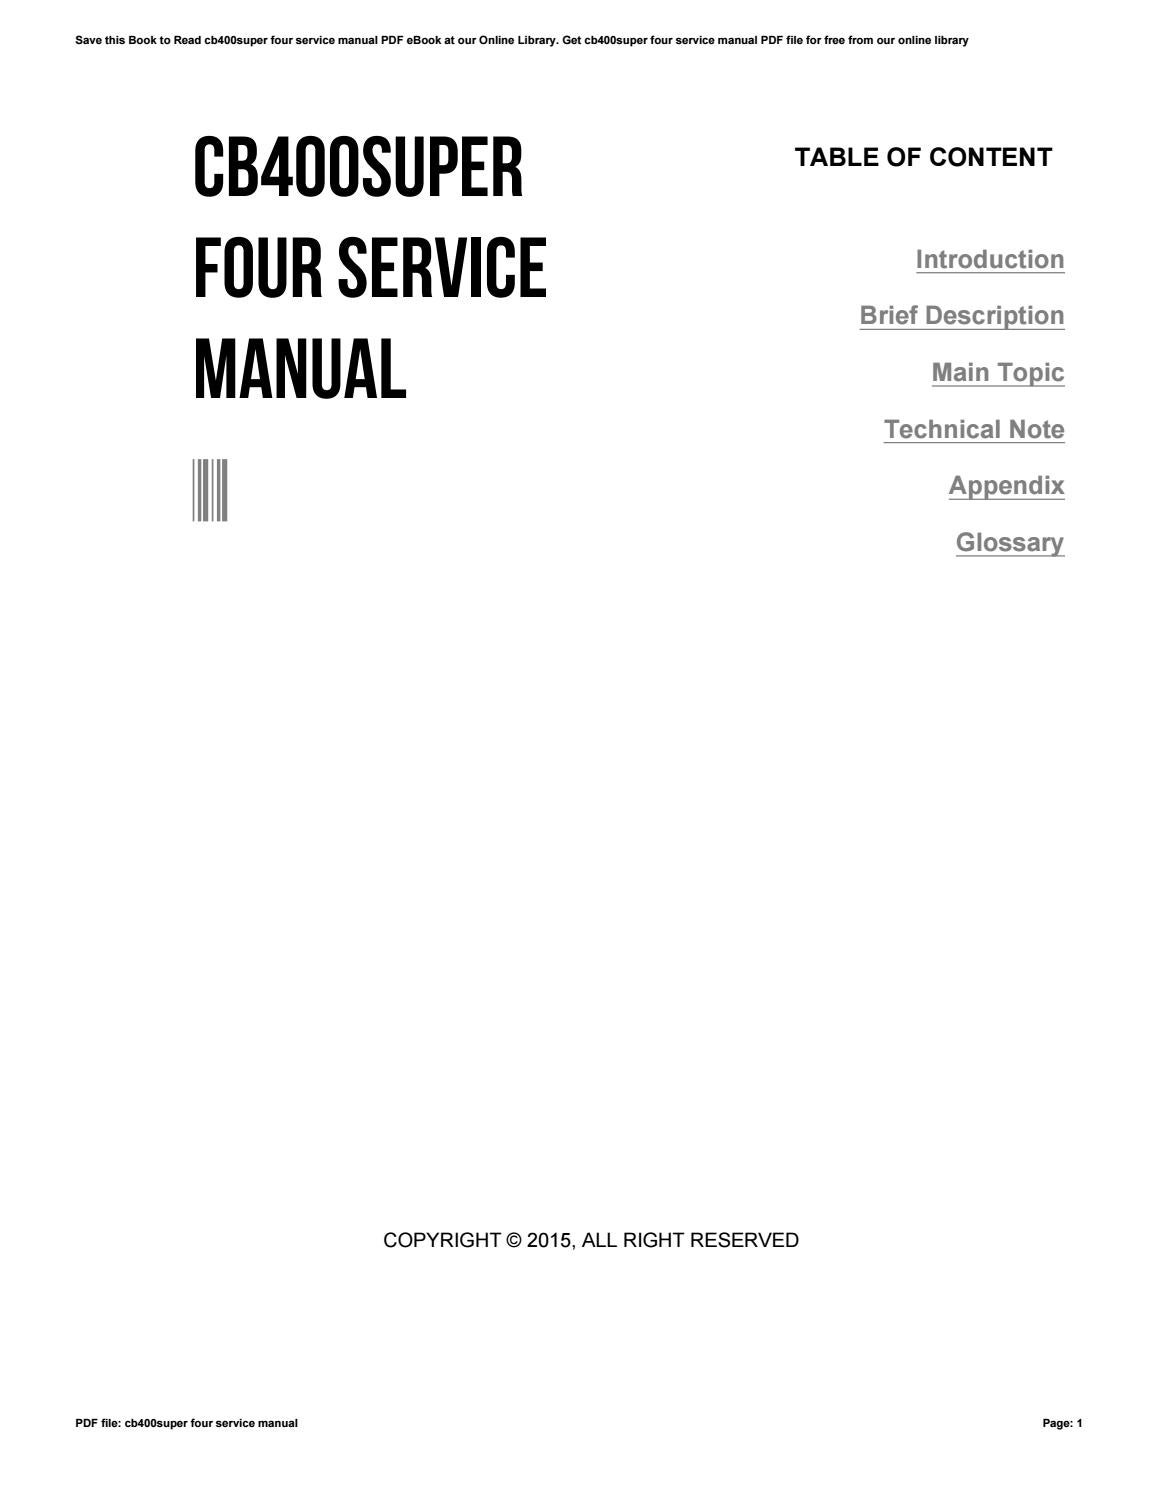 cb400 super four service manual pdf